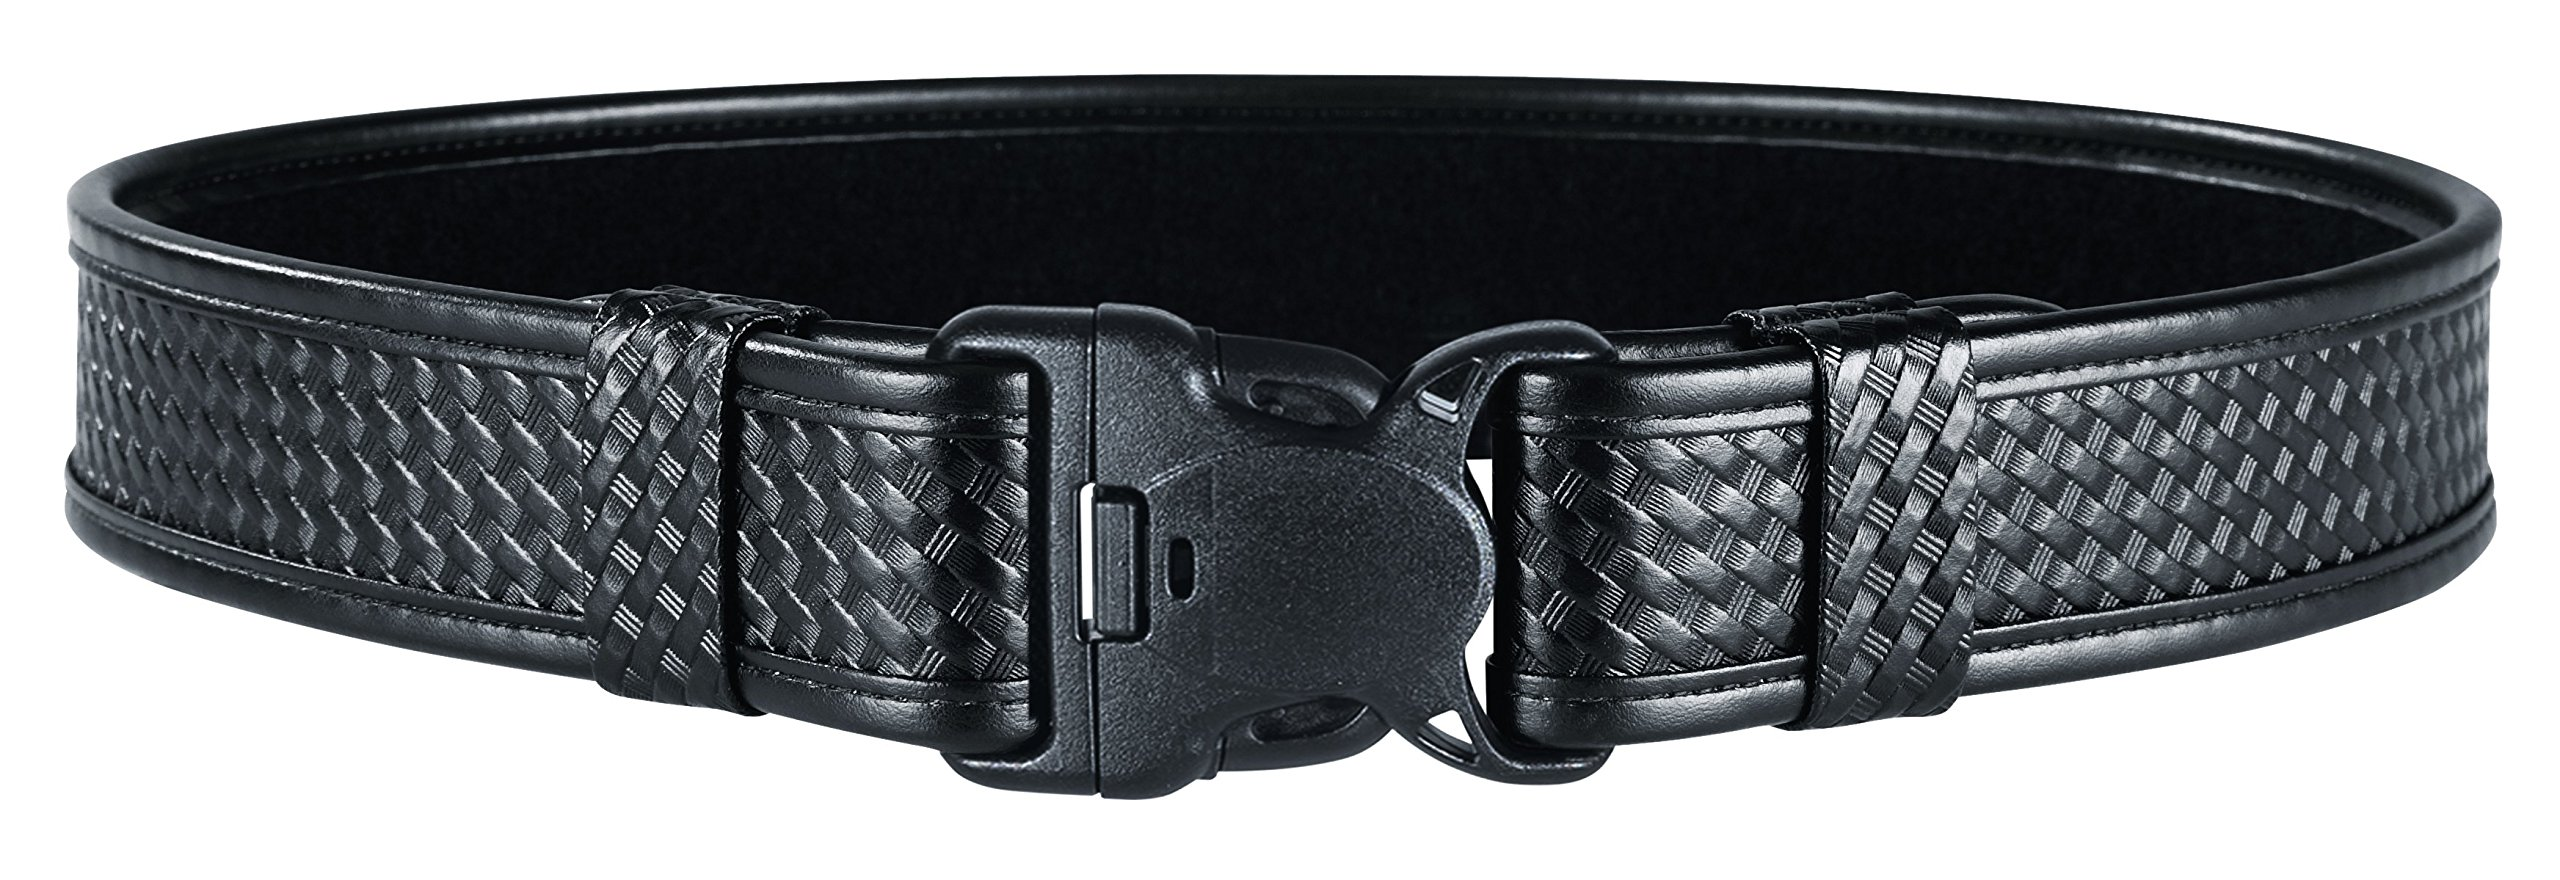 Bianchi 7980 BSK Black Duty Belt (Medium, 34-40)